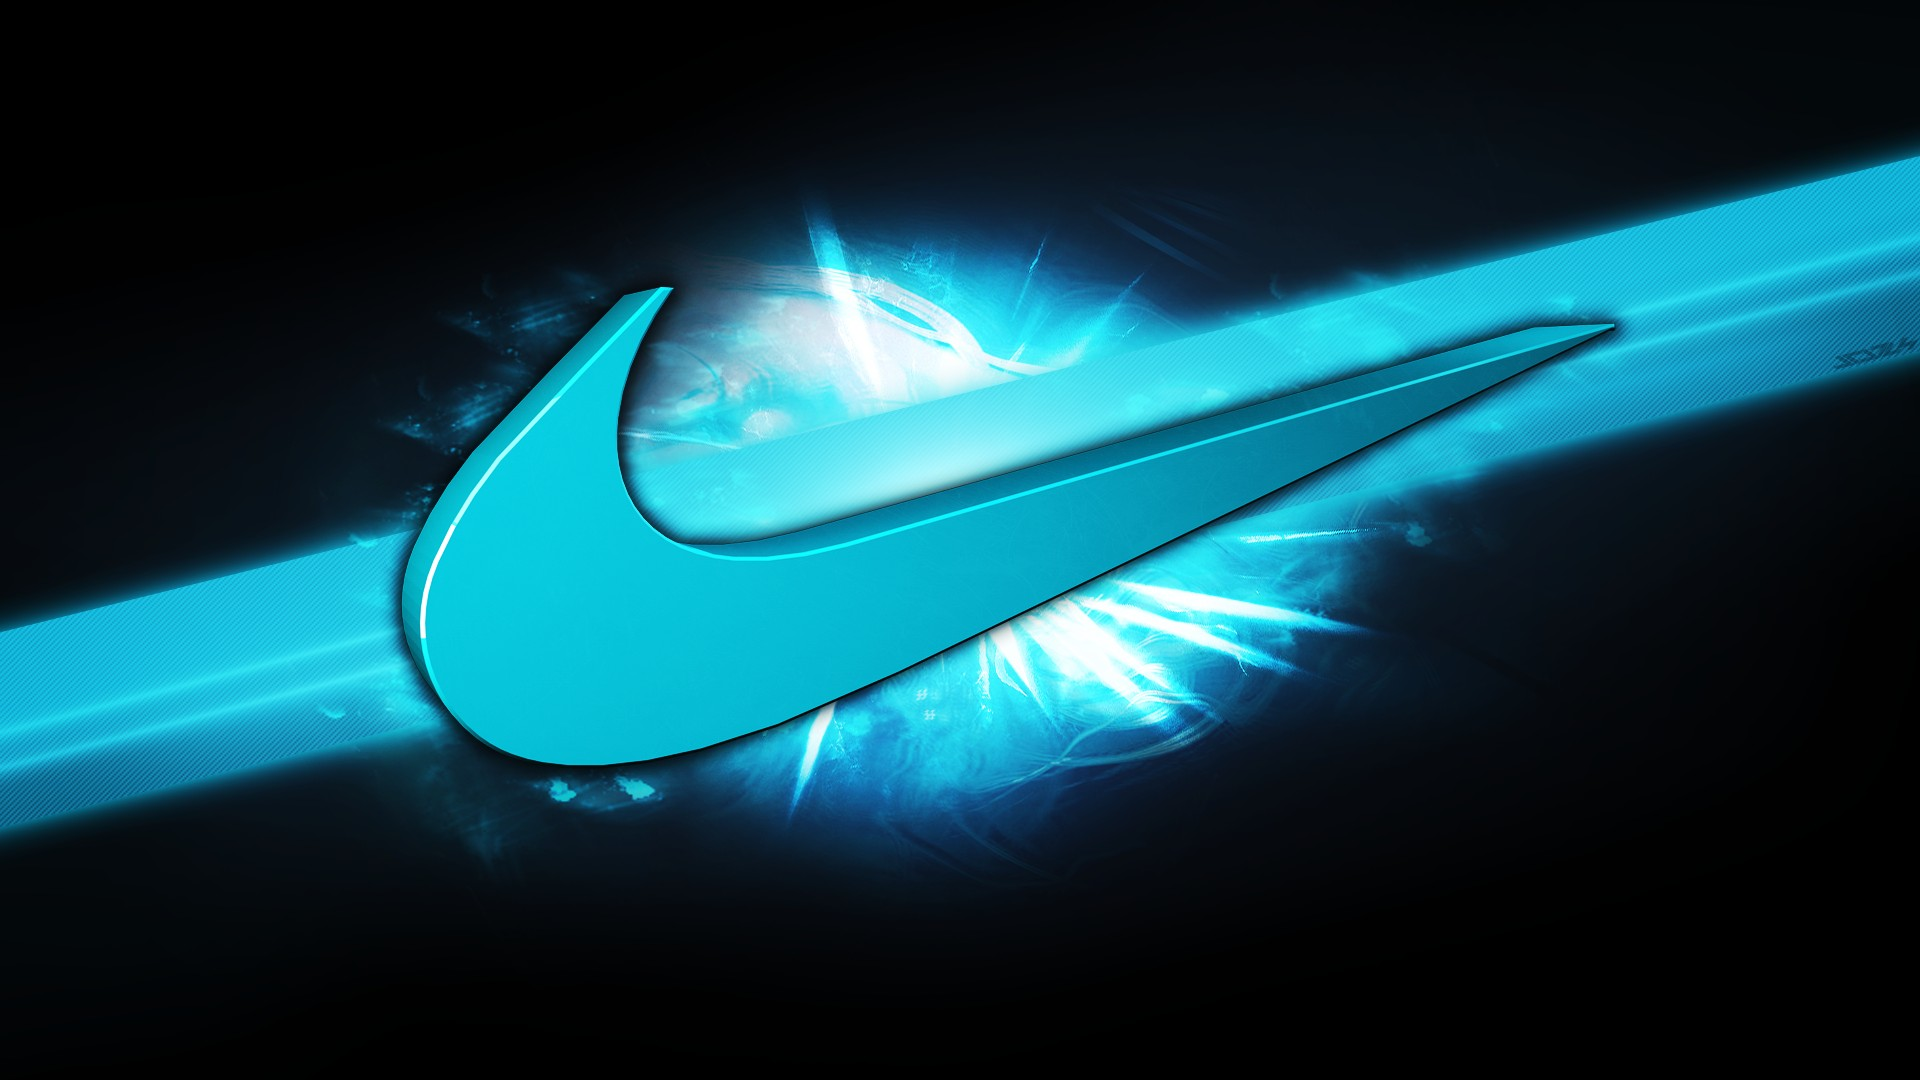 Cool nike wallpaper hd wallpapersafari - Nike wallpaper hd ...